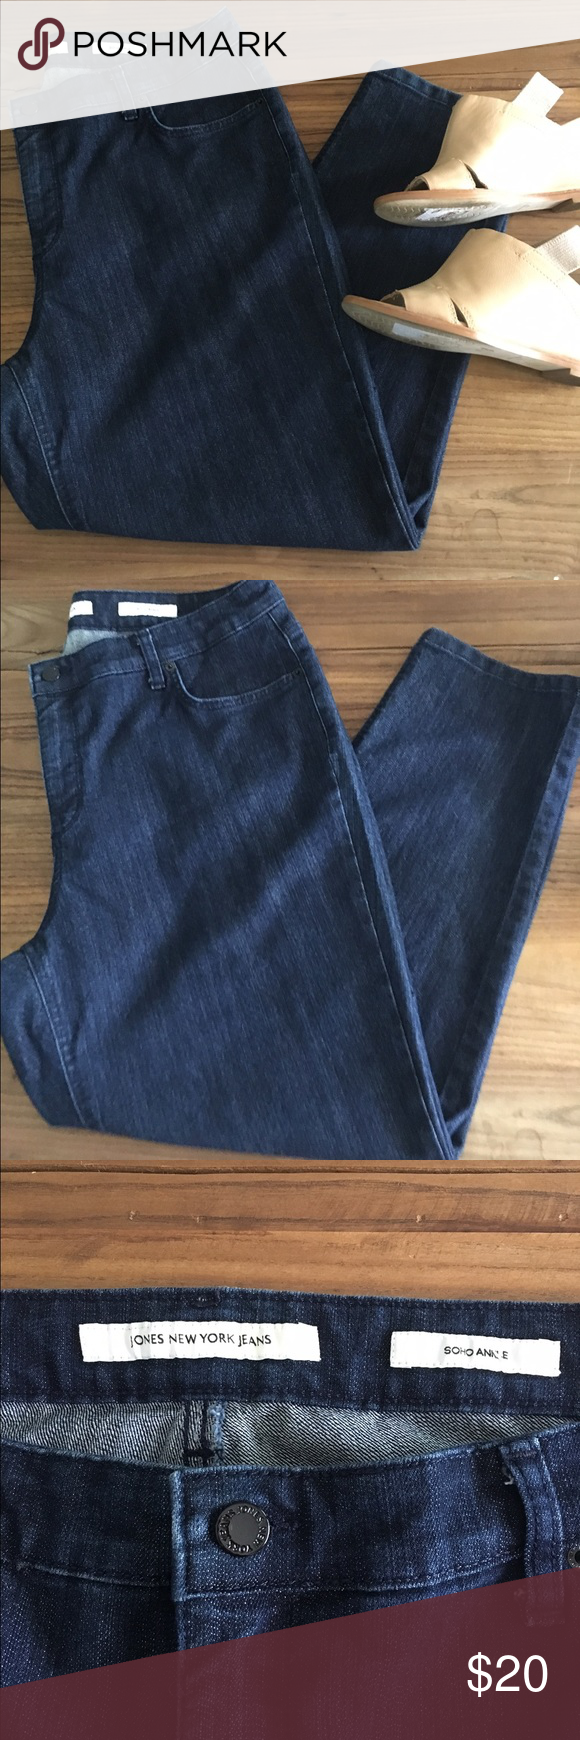 Final Sale Euc Jones New York Soho Ankle Jeans Ankle Jeans Jones New York New York Soho